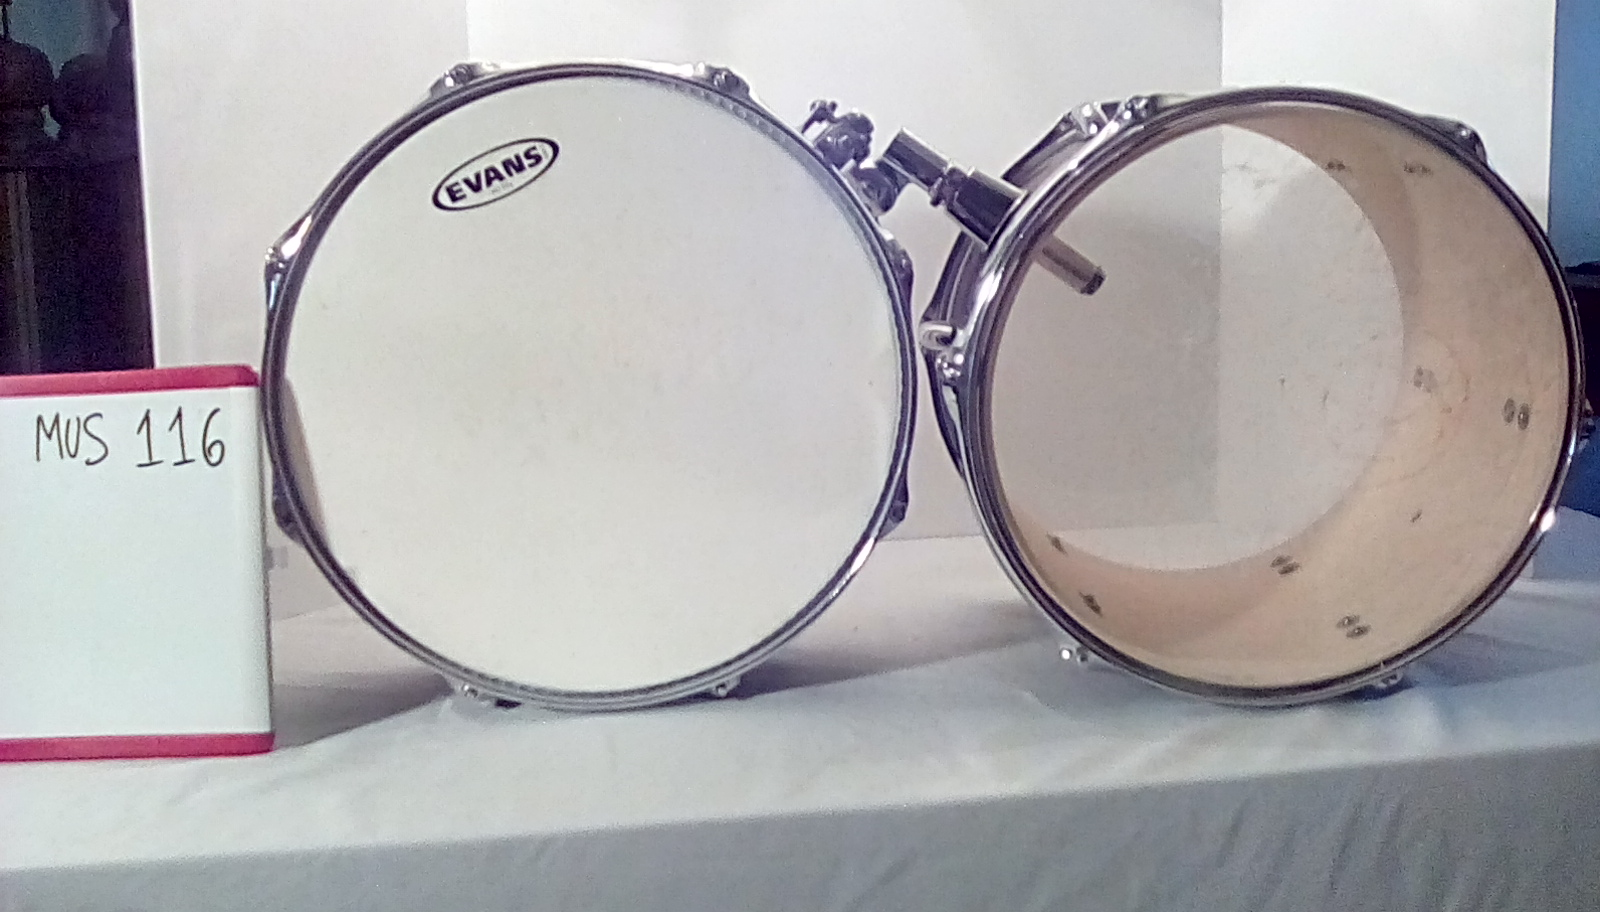 MUS116 snare drum (2 in stock)